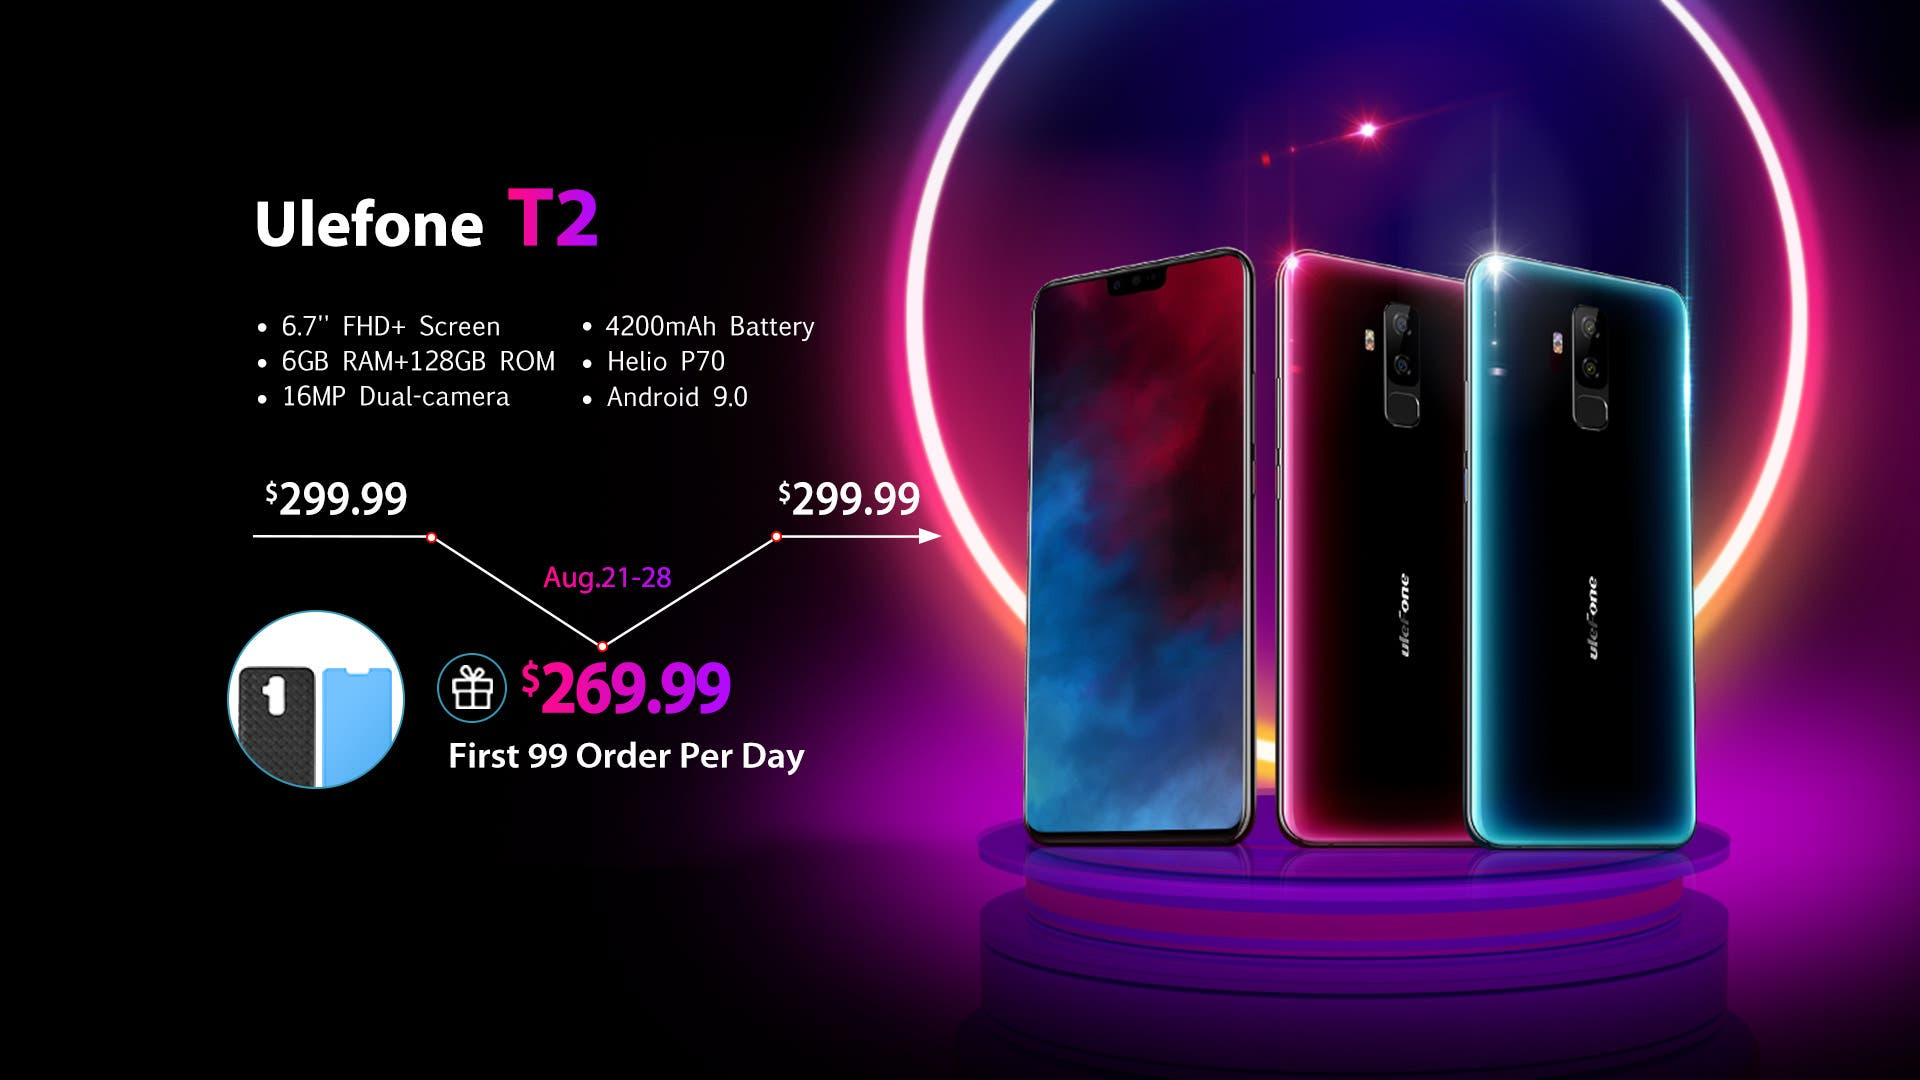 """Ulefone T2 with 6.7"""" SHARP Notch Screen Will Presale at $269.99"""